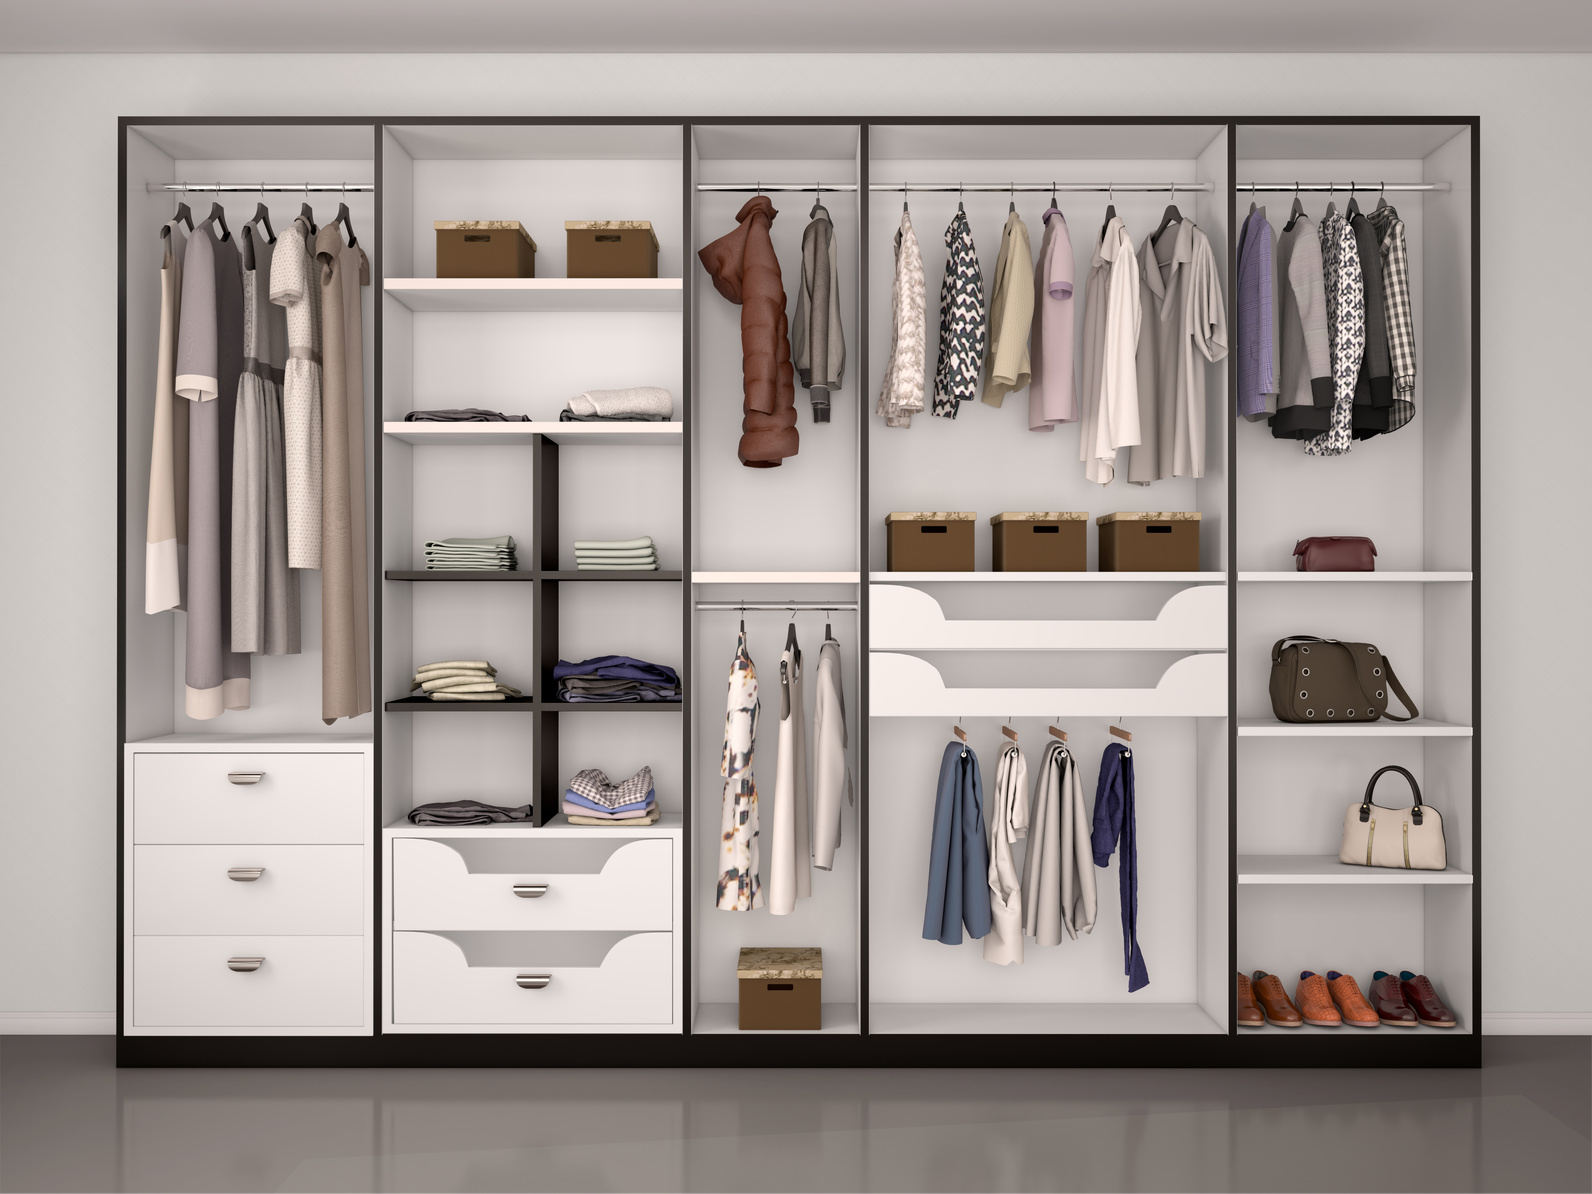 black and white wardrobe closet full of different things. 3d ill